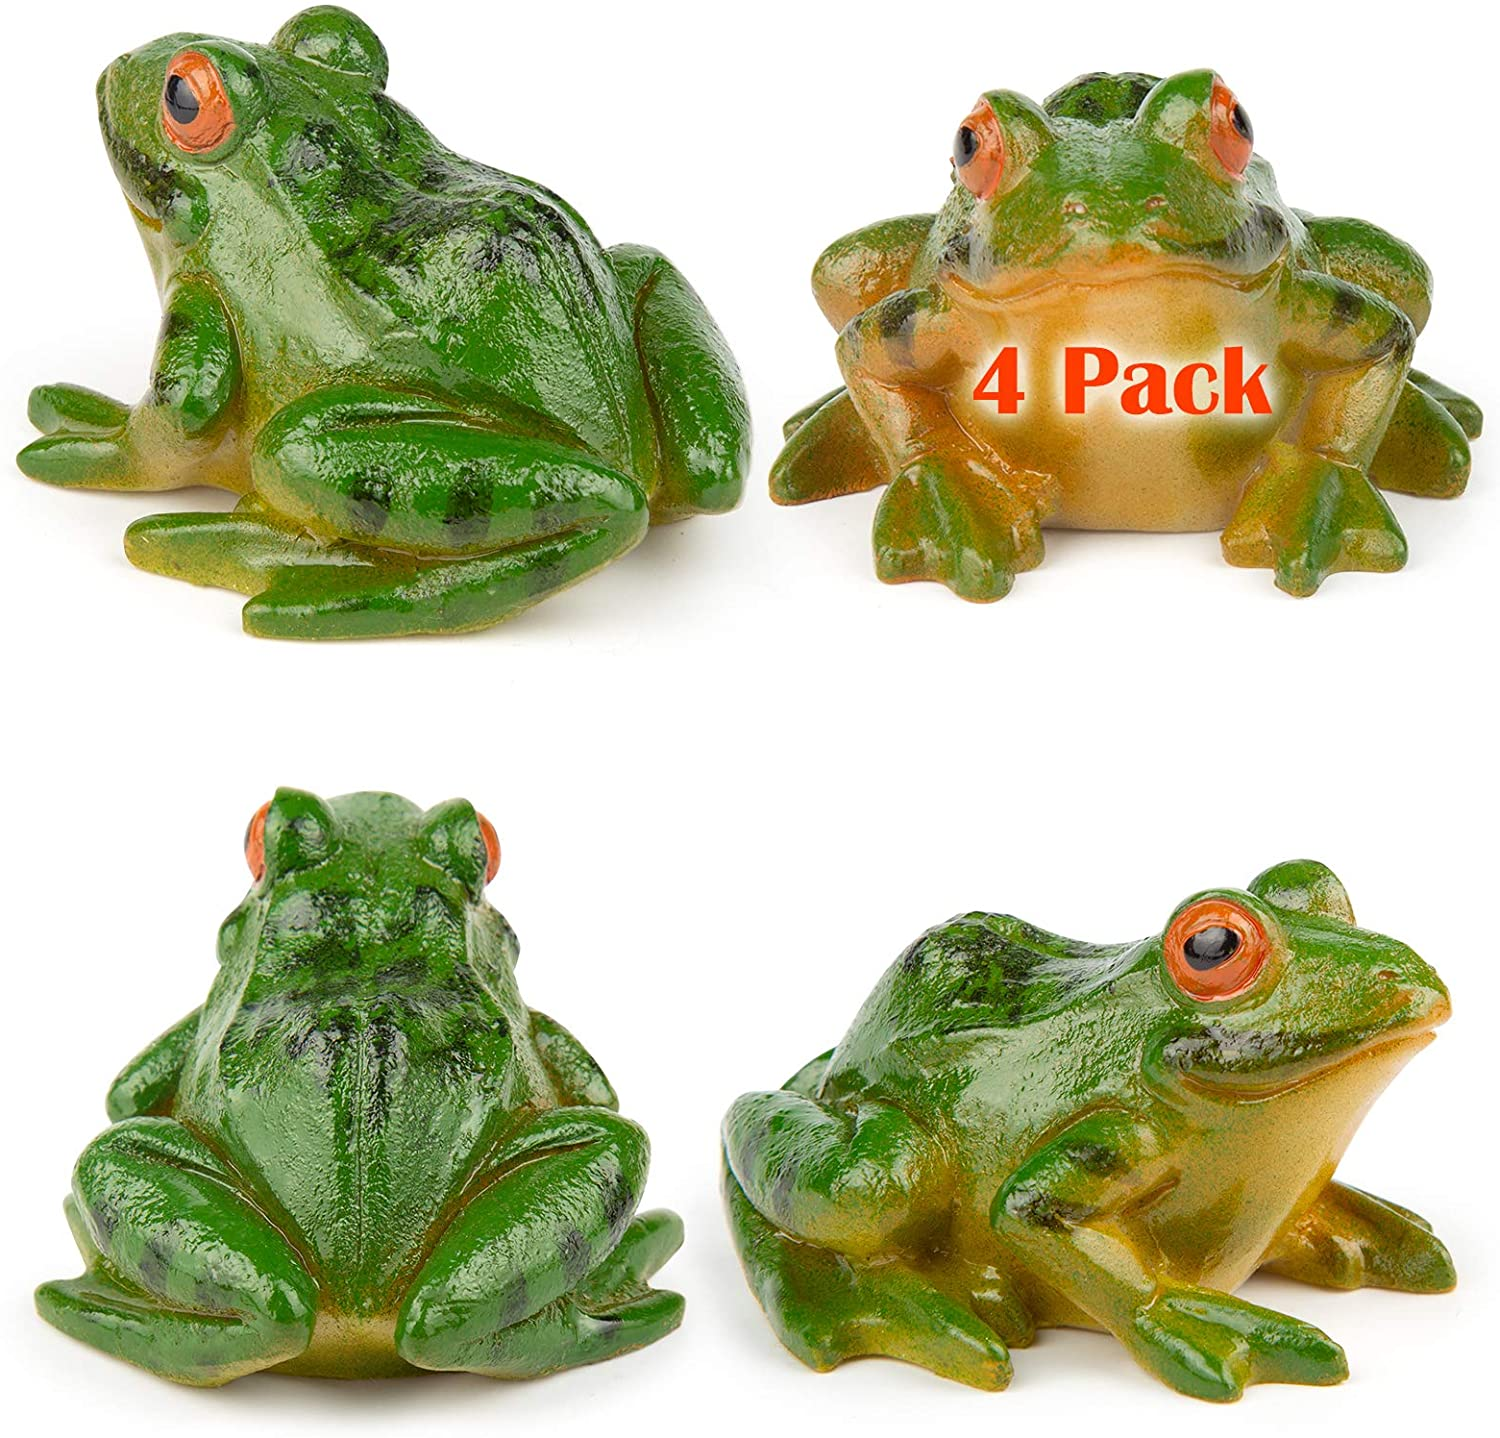 IKAYAS 4 Pcs Cute Miniature Frog Statue Outdoor Garden Frog Statue Frog Figurines Frog Accessories Animal Sculpture Simulated Frogs for Garden Yard Decorations